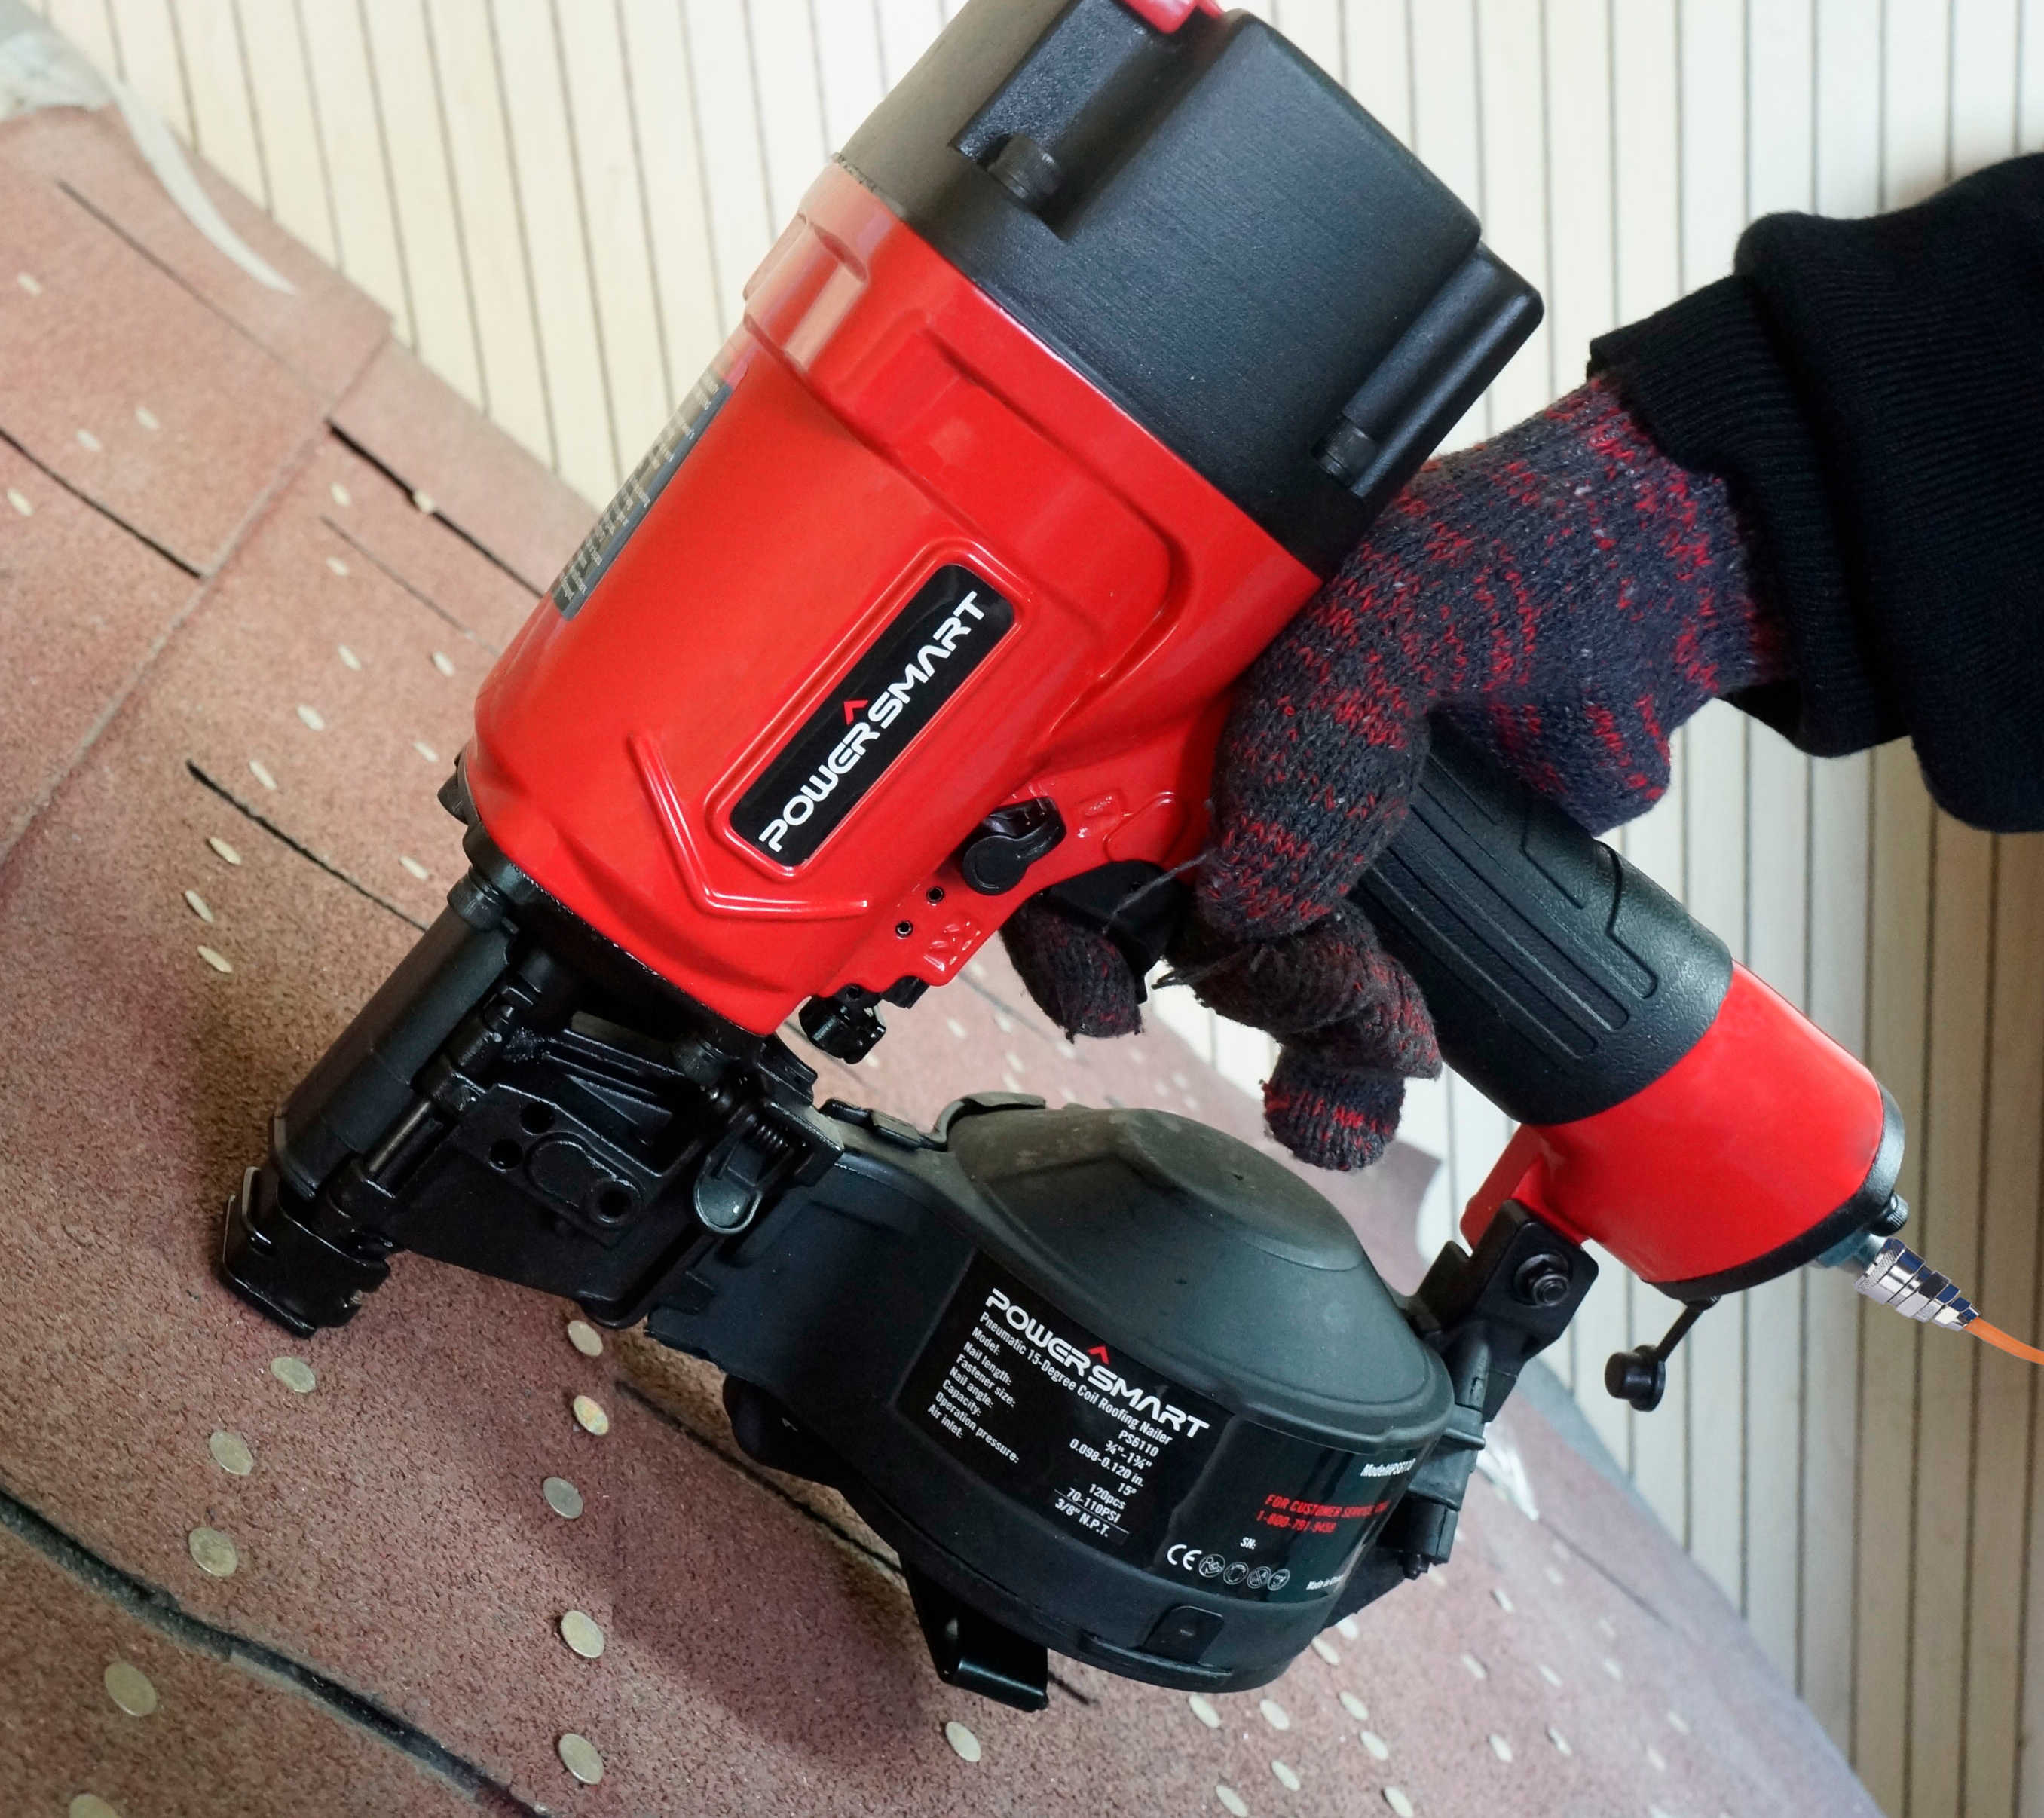 PowerSmart PS6110 Pneumatic 15-Degree Coil Roofing Nailer